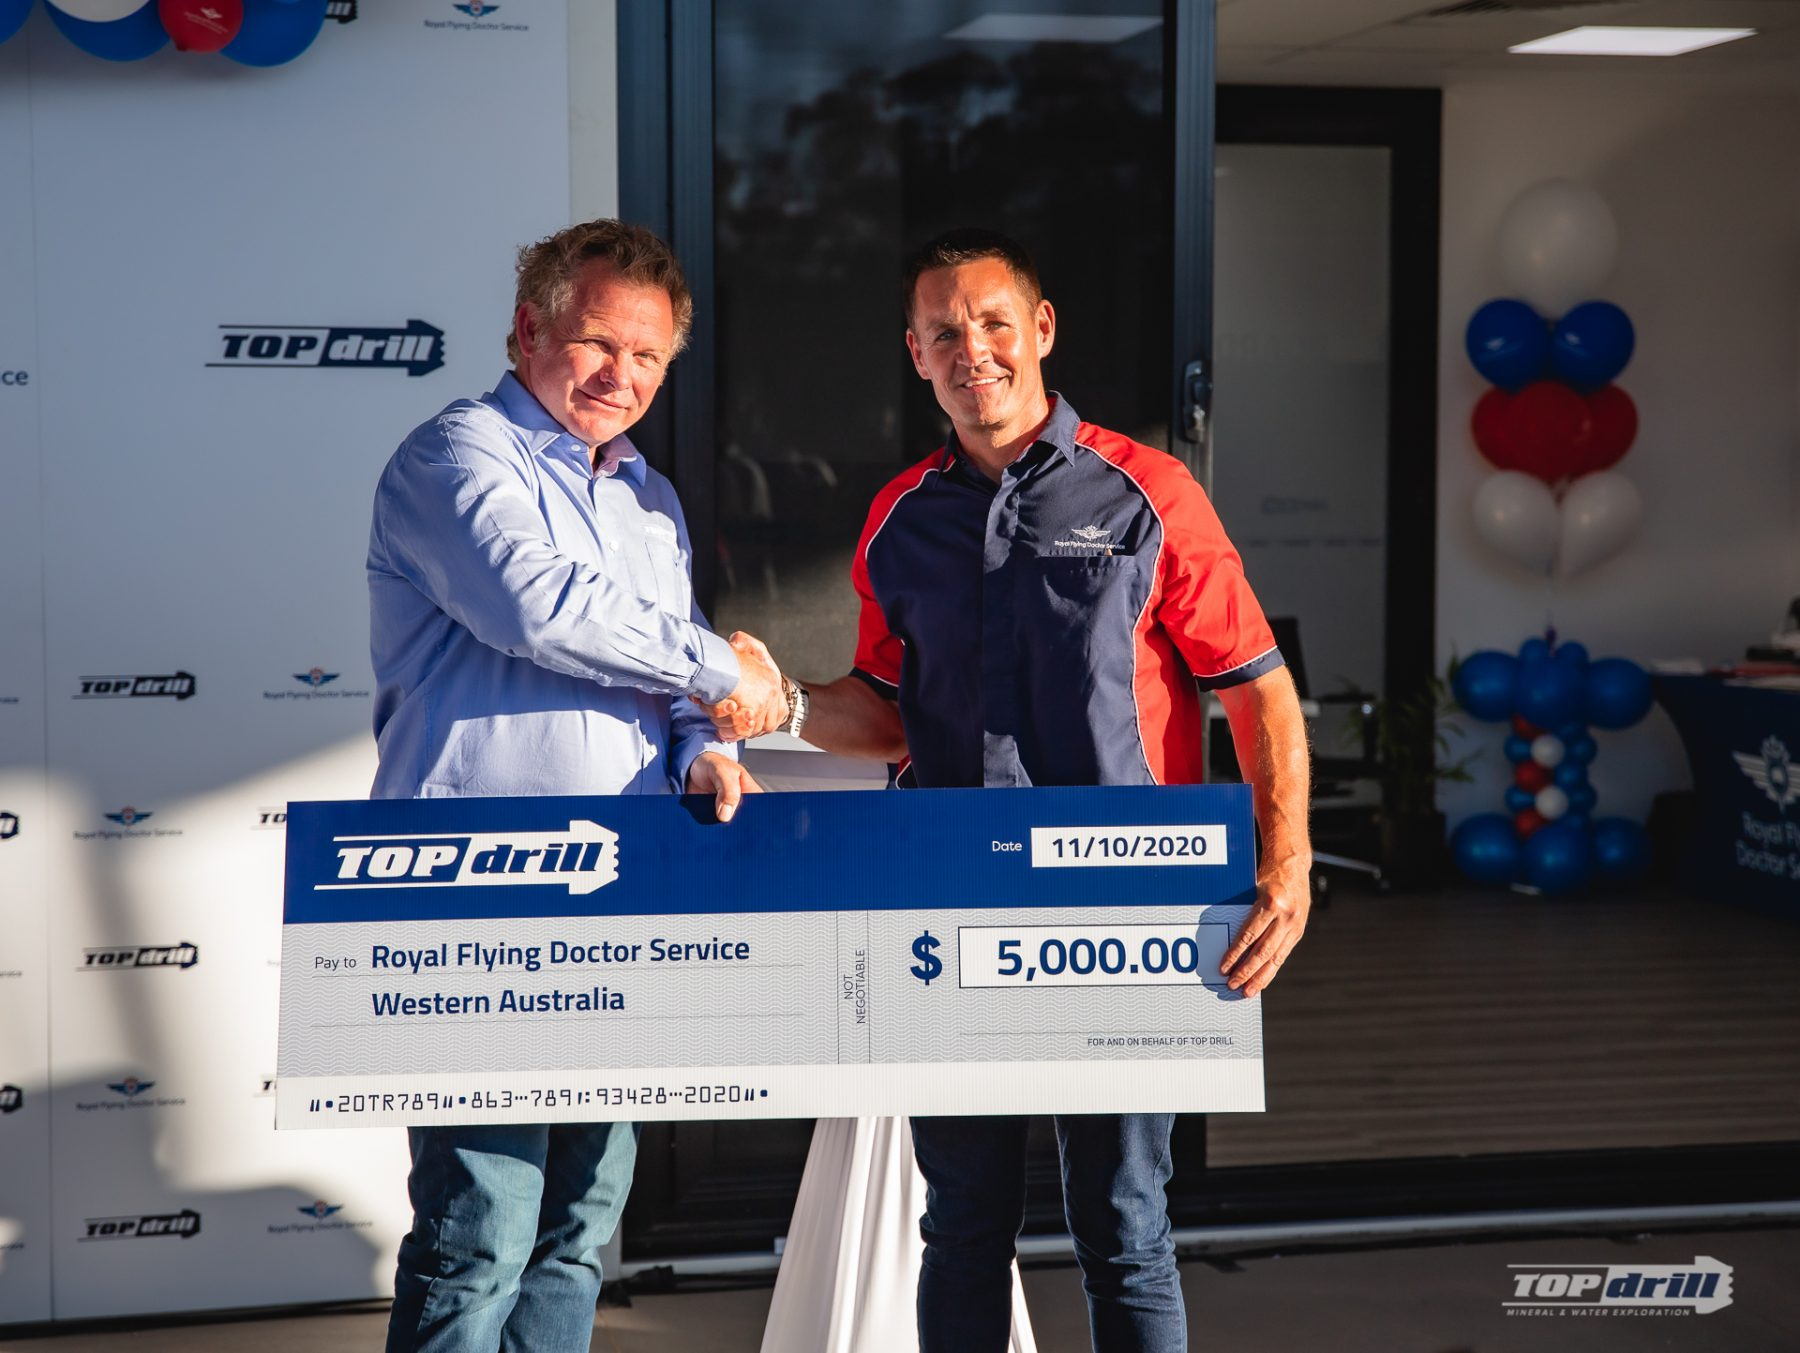 Donation Cheque from Topdrill to Royal Flying Doctor Service